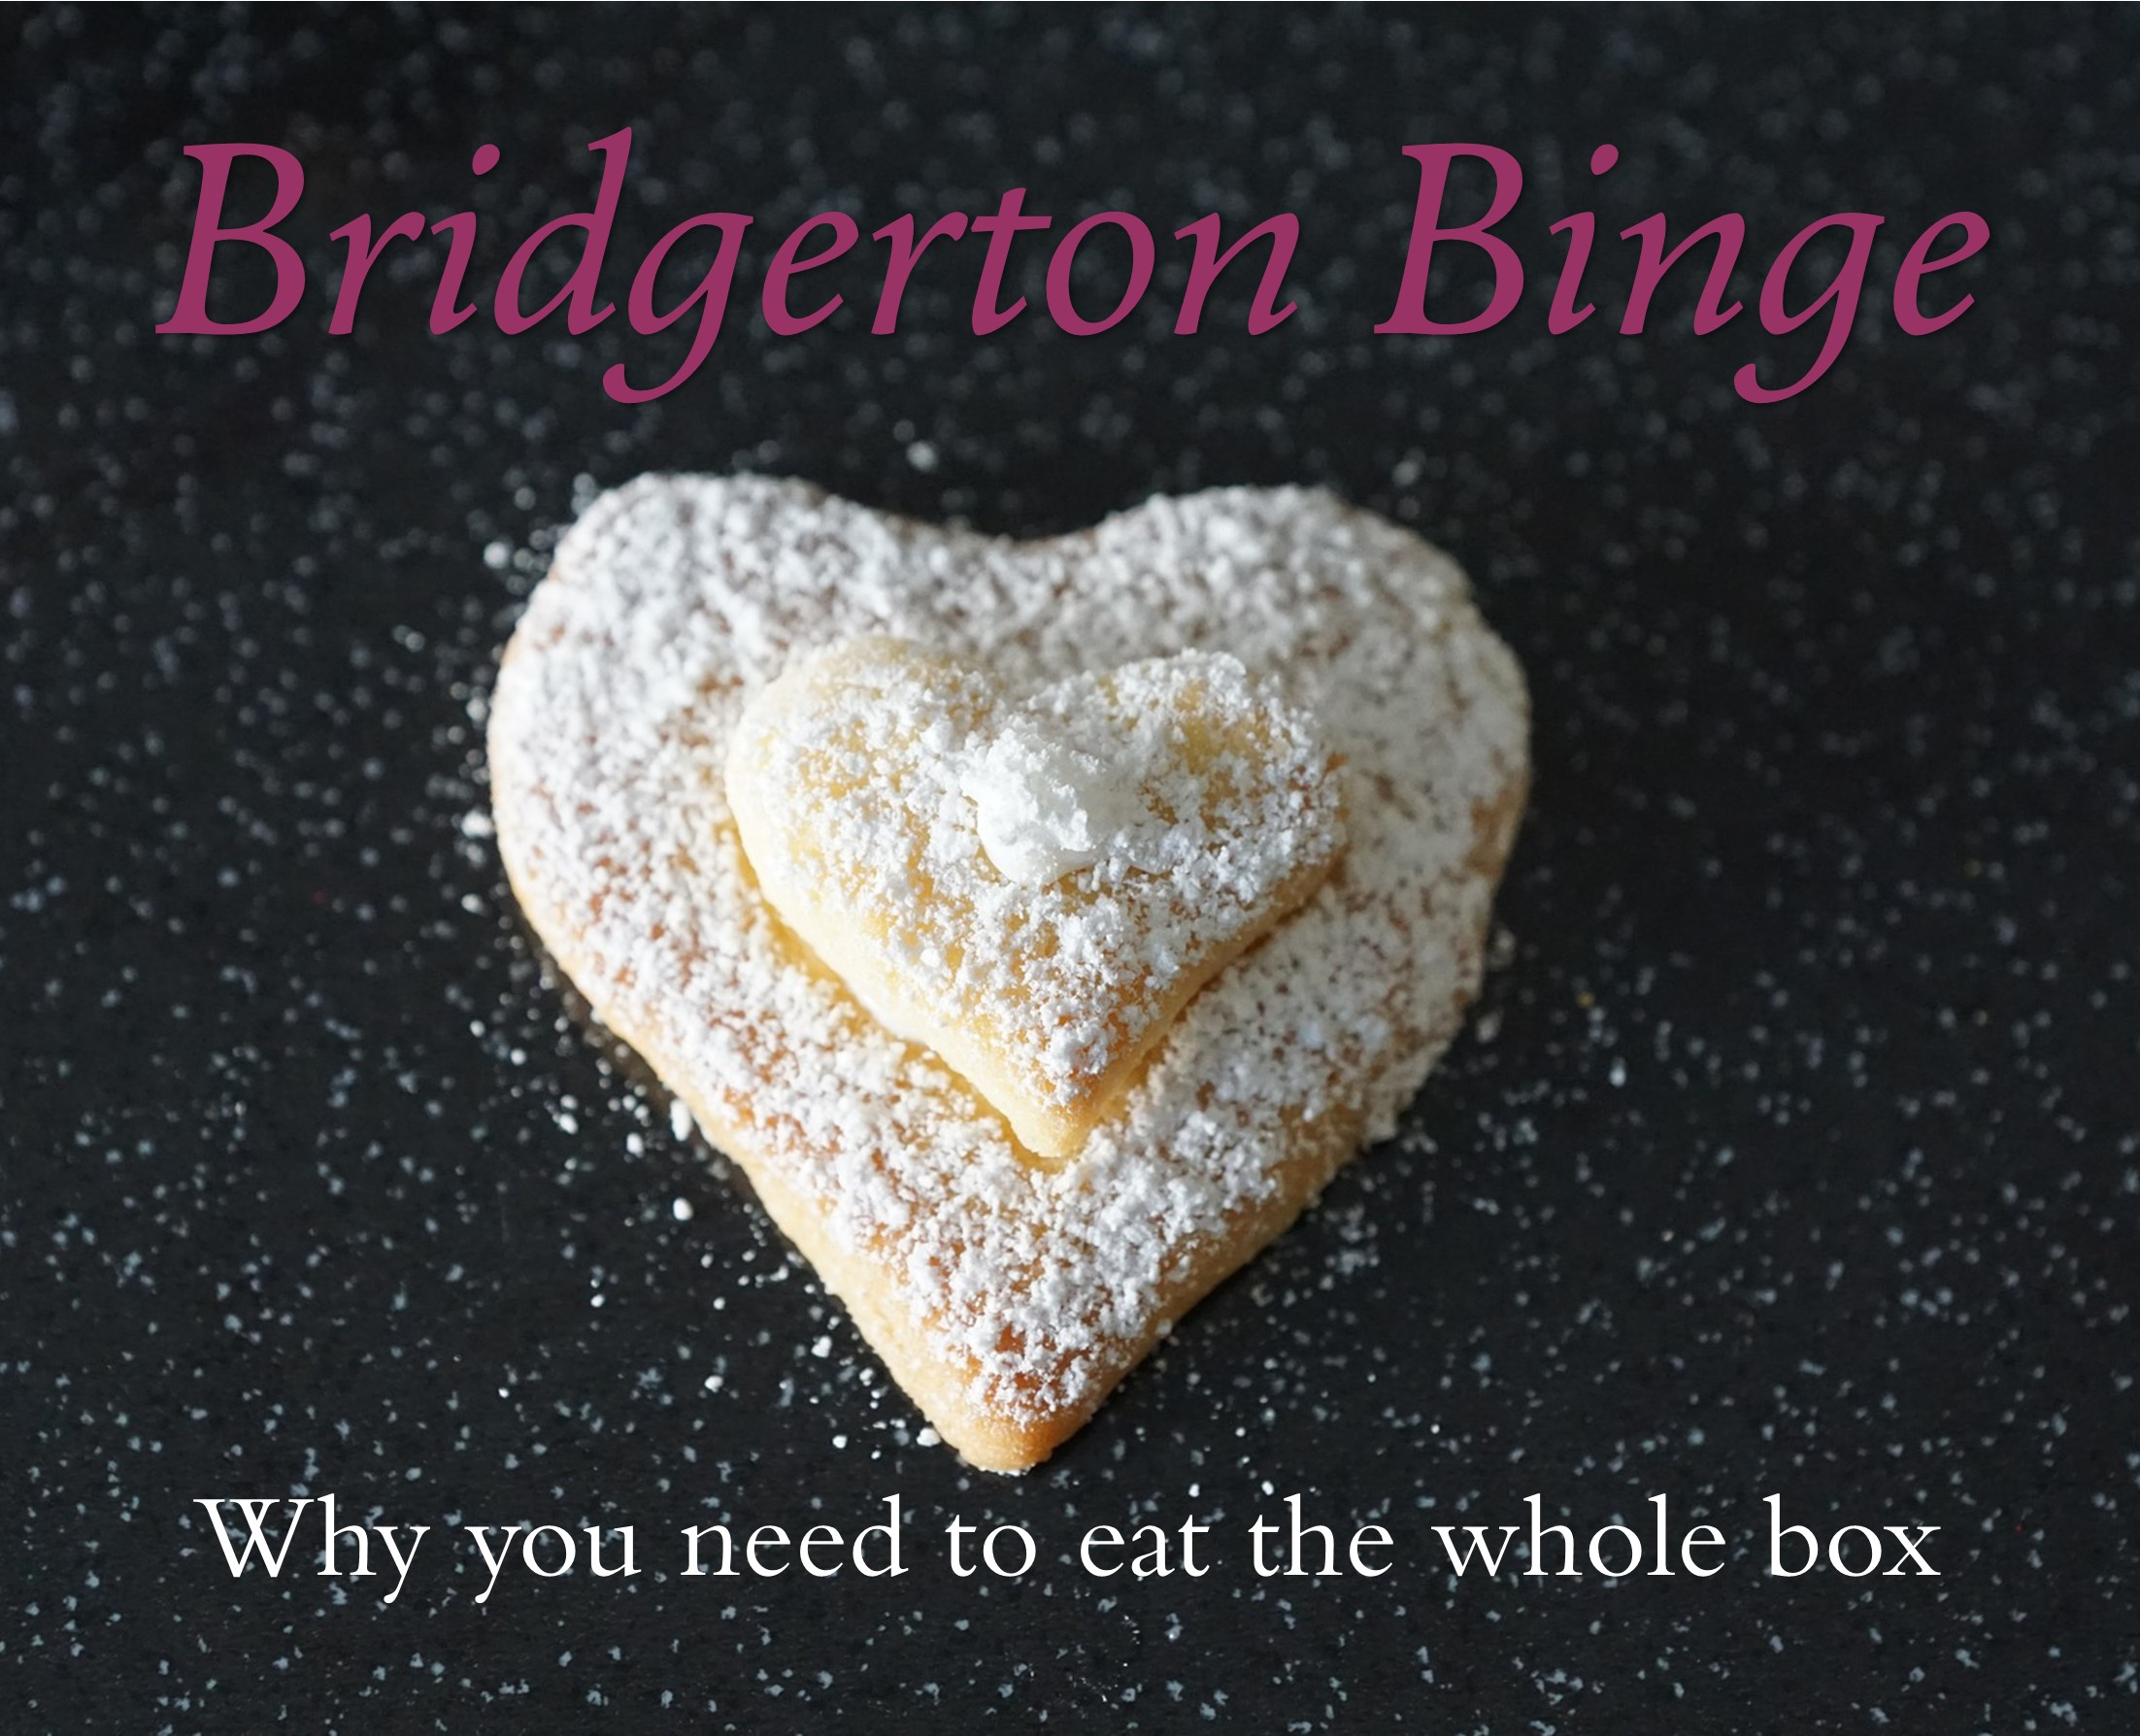 Bridgerton Binge